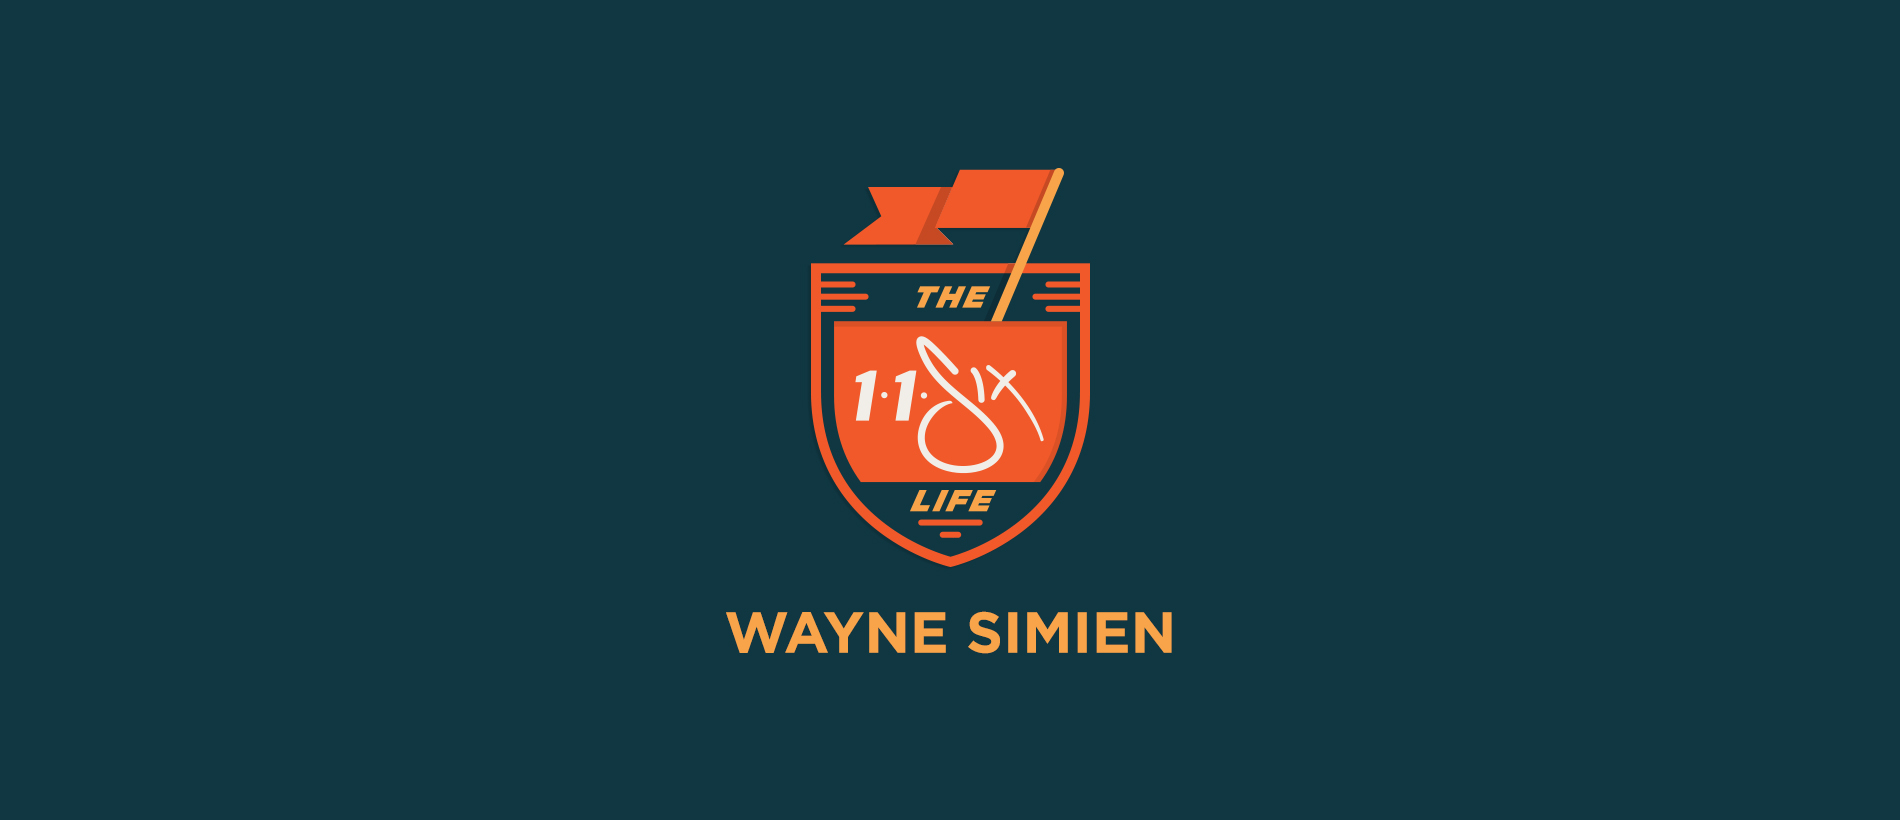 The 116 Life x Wayne Simien